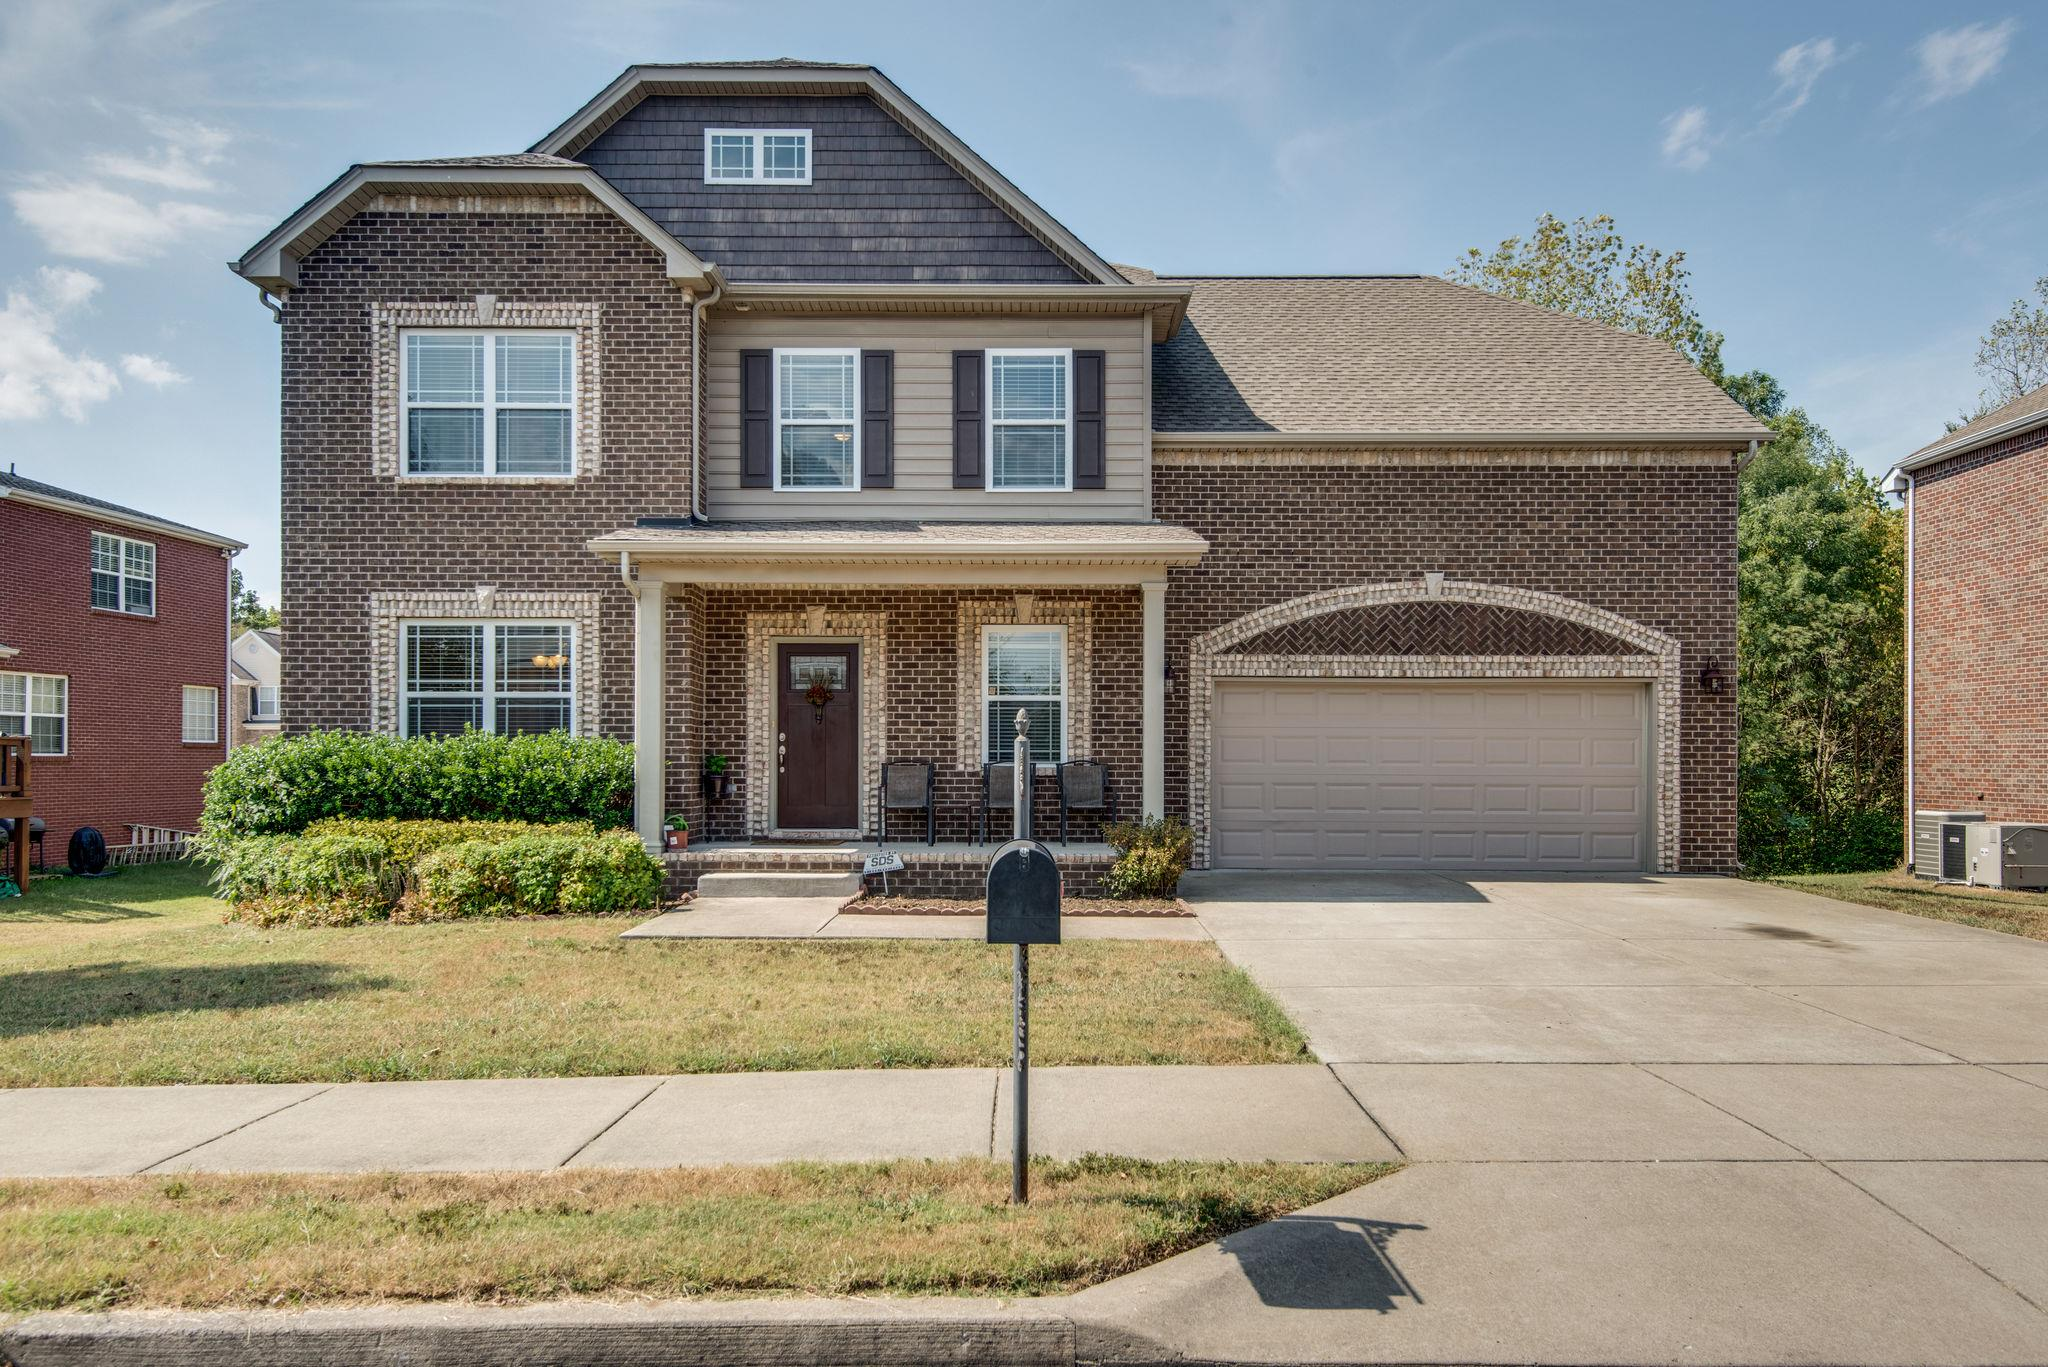 6352 Sunnywood Dr, Antioch, TN 37013 - Antioch, TN real estate listing